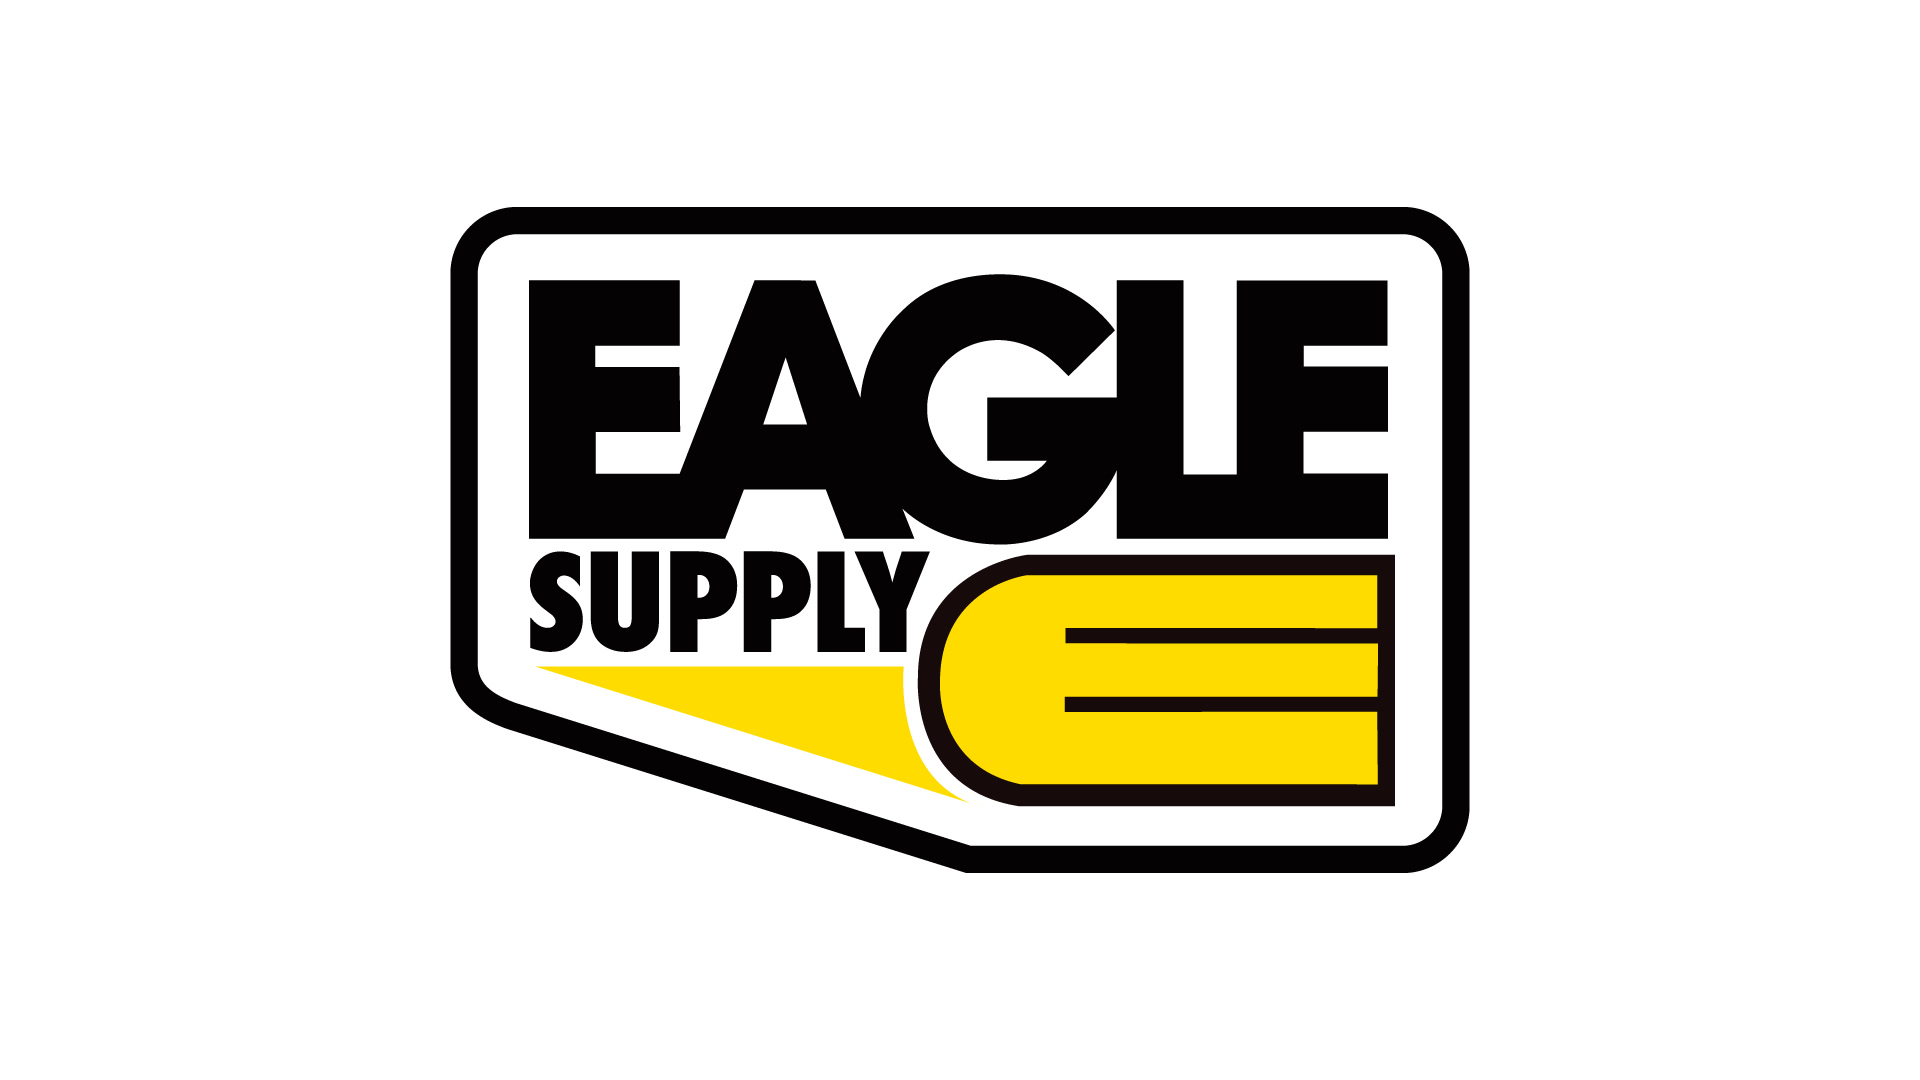 EAGLES SUPPLY